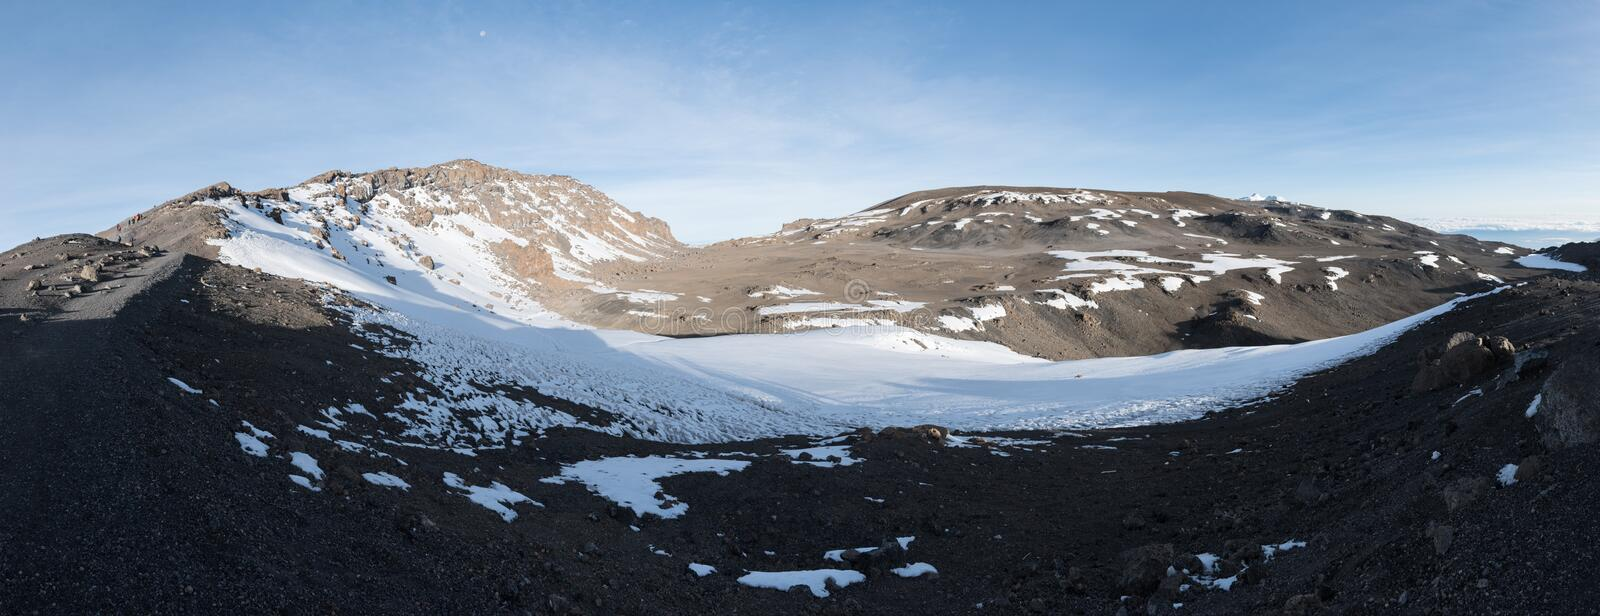 Vue panoramique à travers le cratère en haut de Kilimanjaro pris de près de Stella Point photos libres de droits